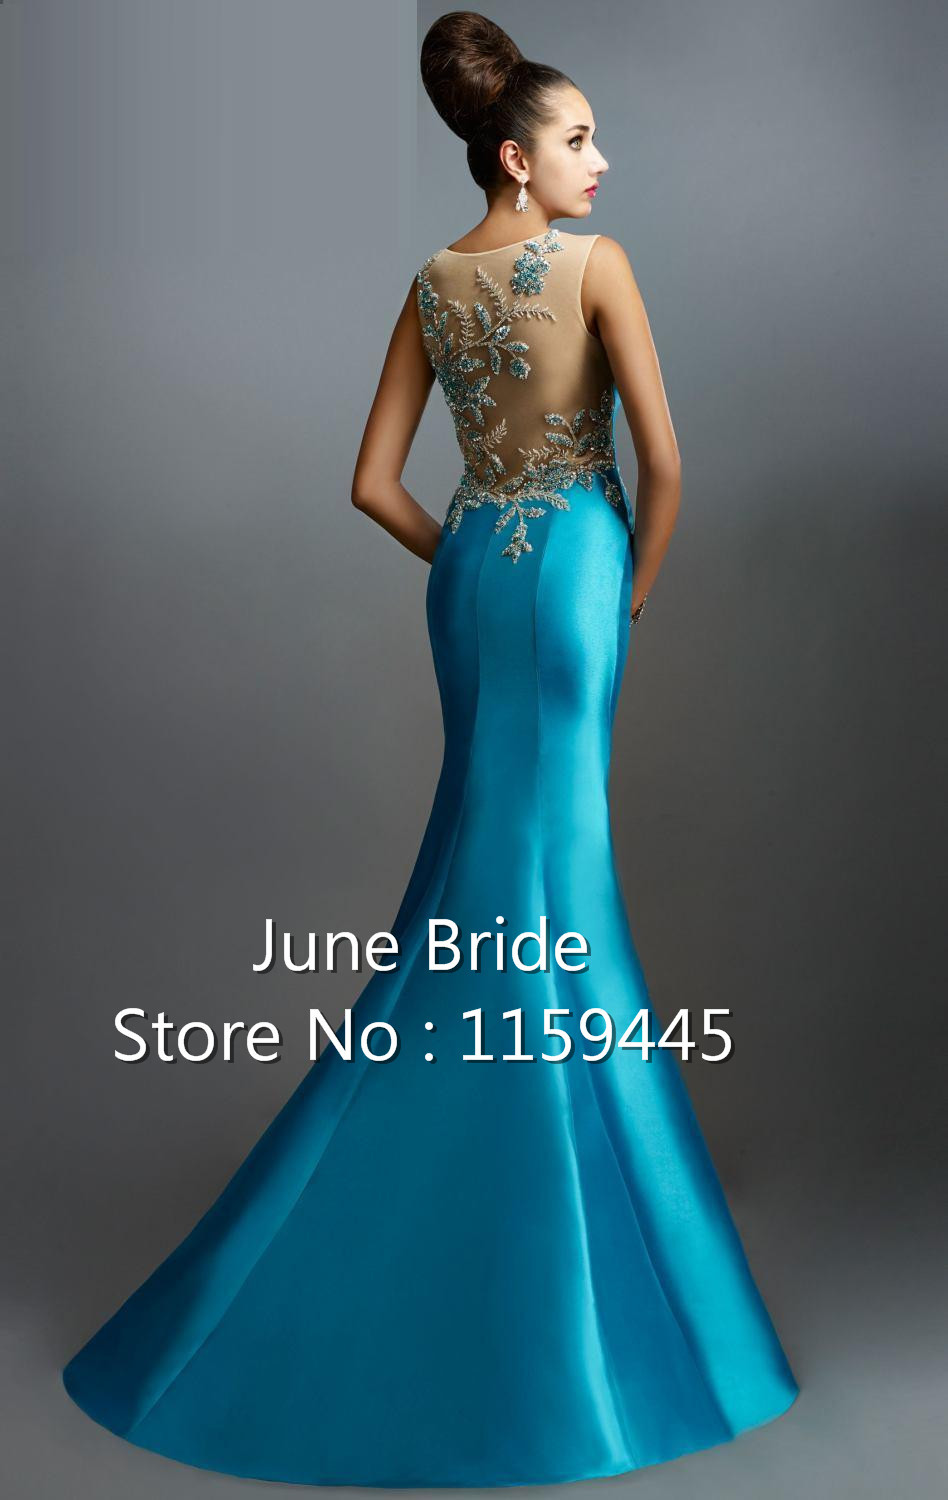 Awesome Trumpet Style Prom Dresses Collection - All Wedding Dresses ...